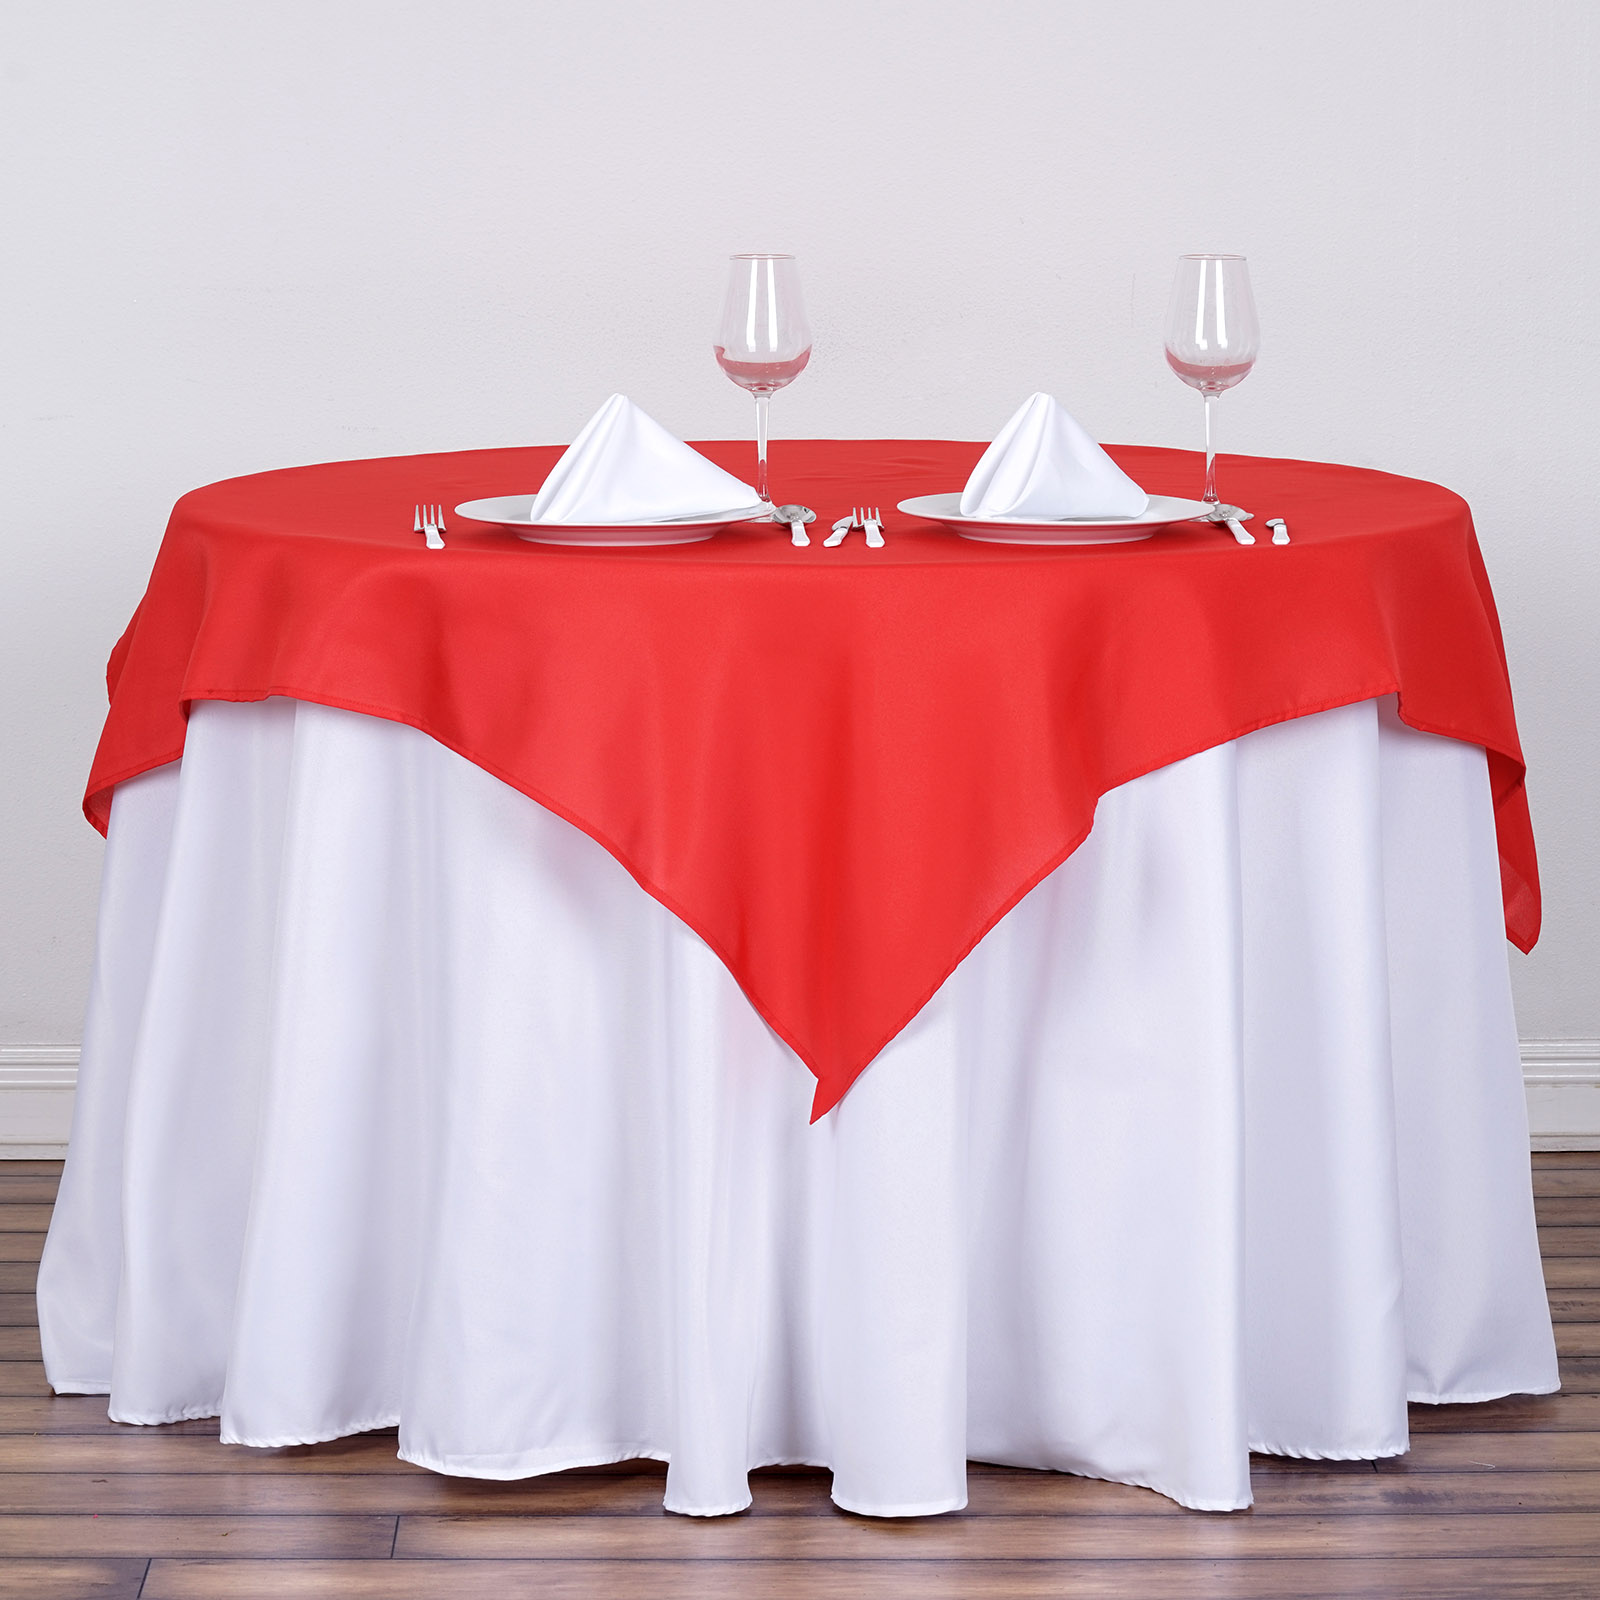 """BalsaCircle 54"""" x 54"""" Square Polyester Tablecloth Table Covers for Party Wedding Reception Catering Dining Home Table Linens"""